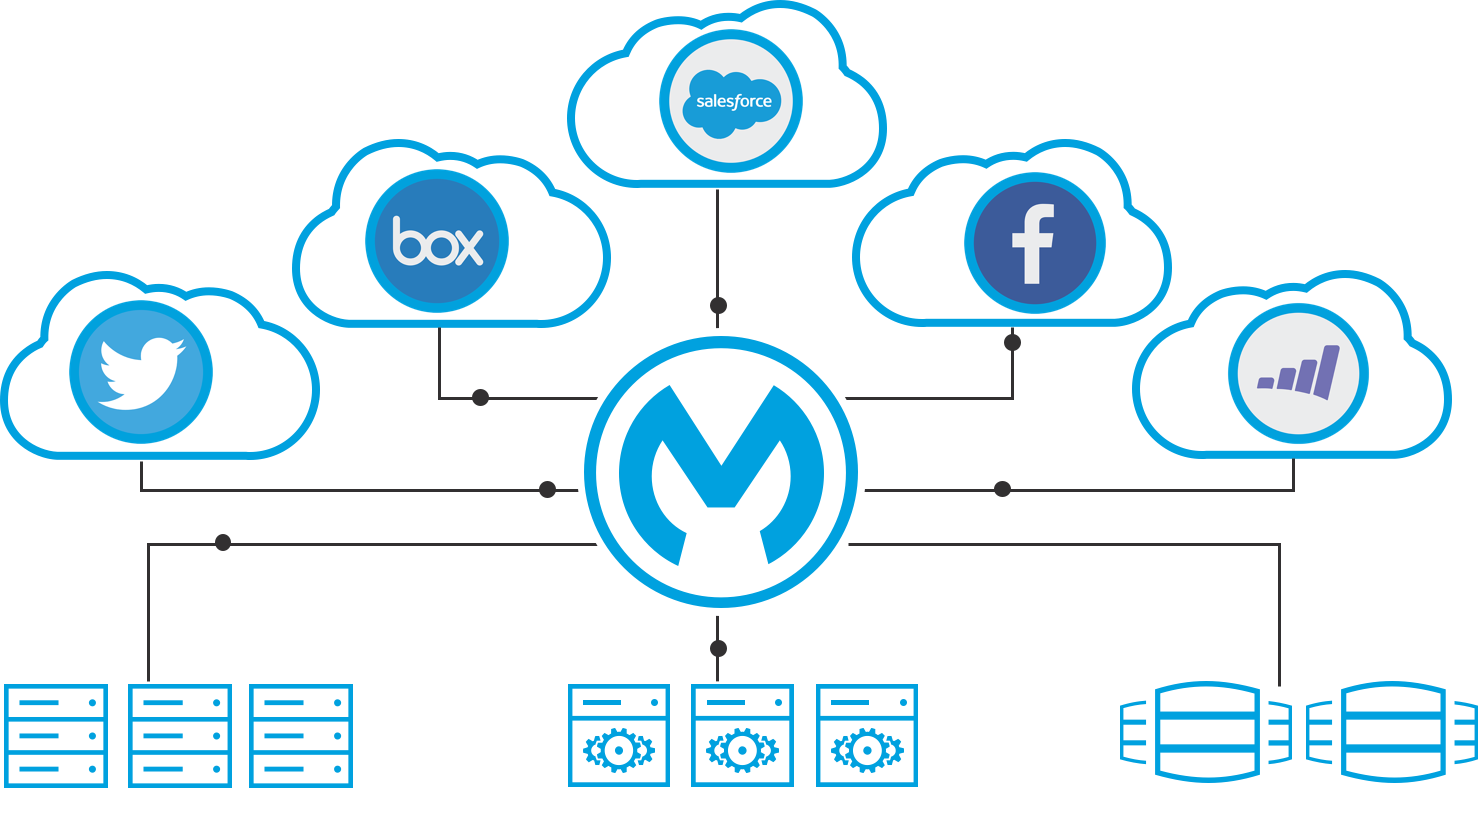 Middleware technology for integration open source esb mulesoft cloudhub an integration platform as a service ipaas that enables businesses to build and offer reusable integration applications without the hassle of baditri Image collections